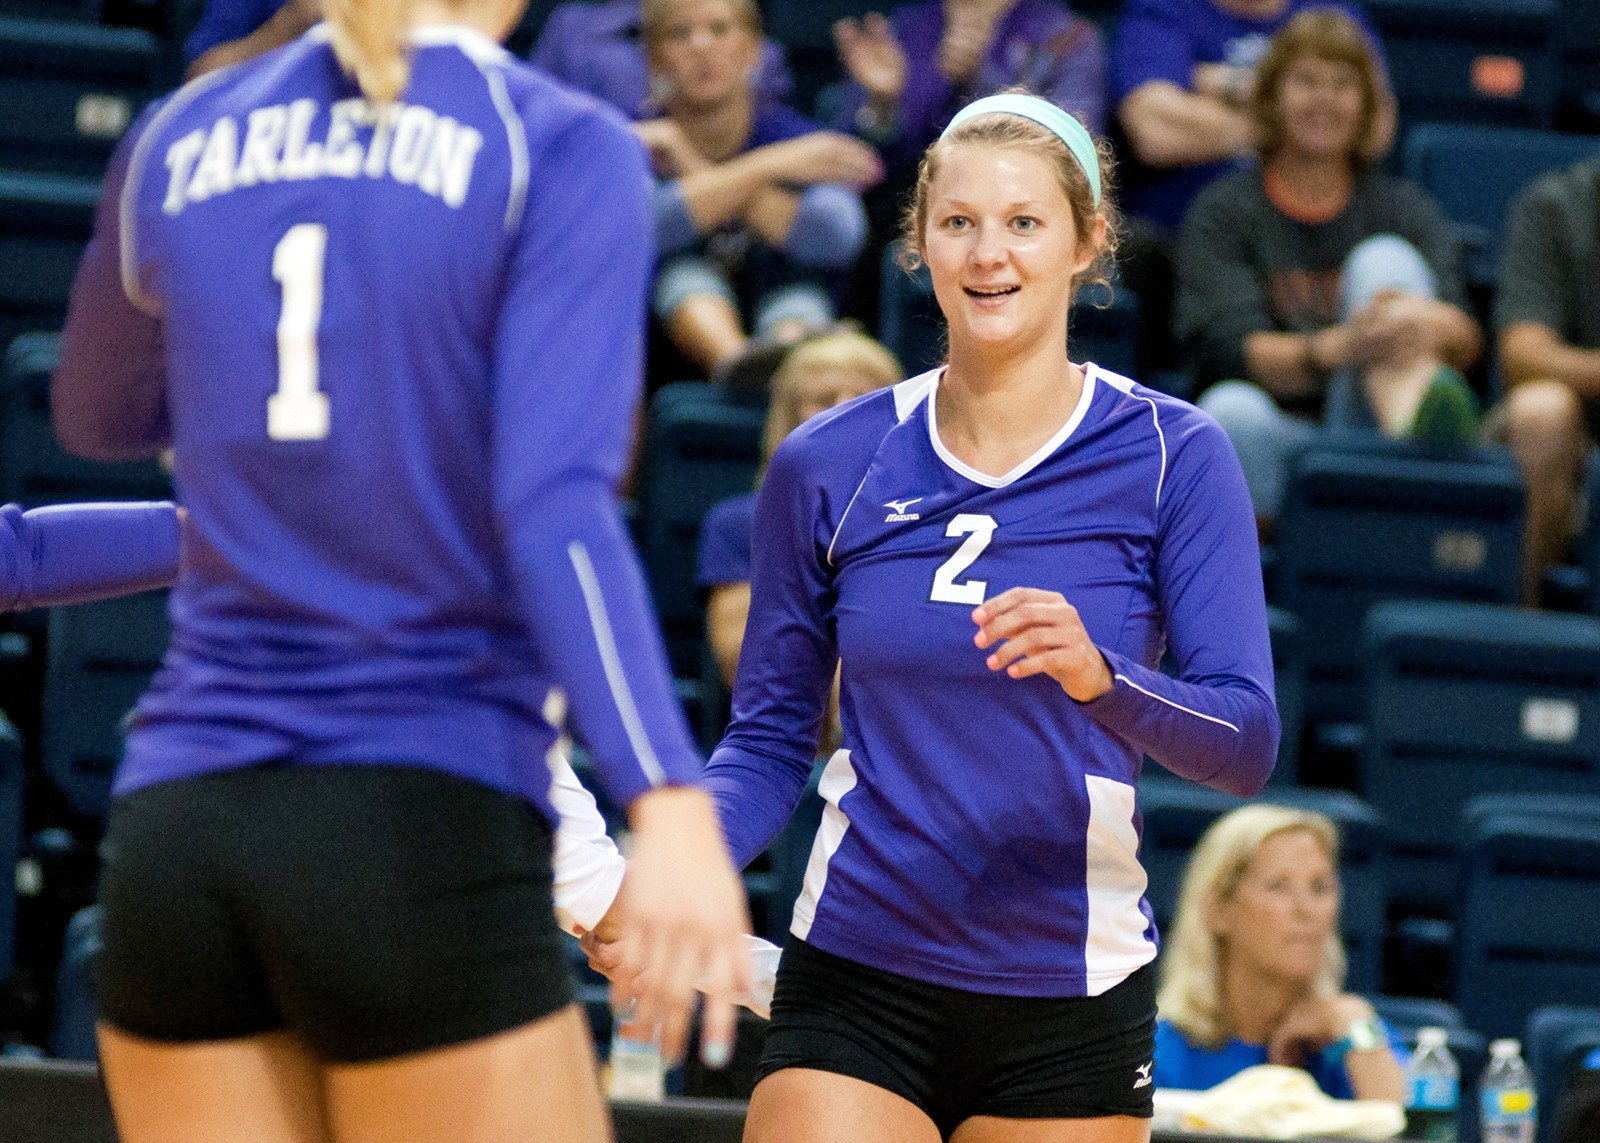 Hailey Roberts reflects on being named LSC Offensive Player of the Week